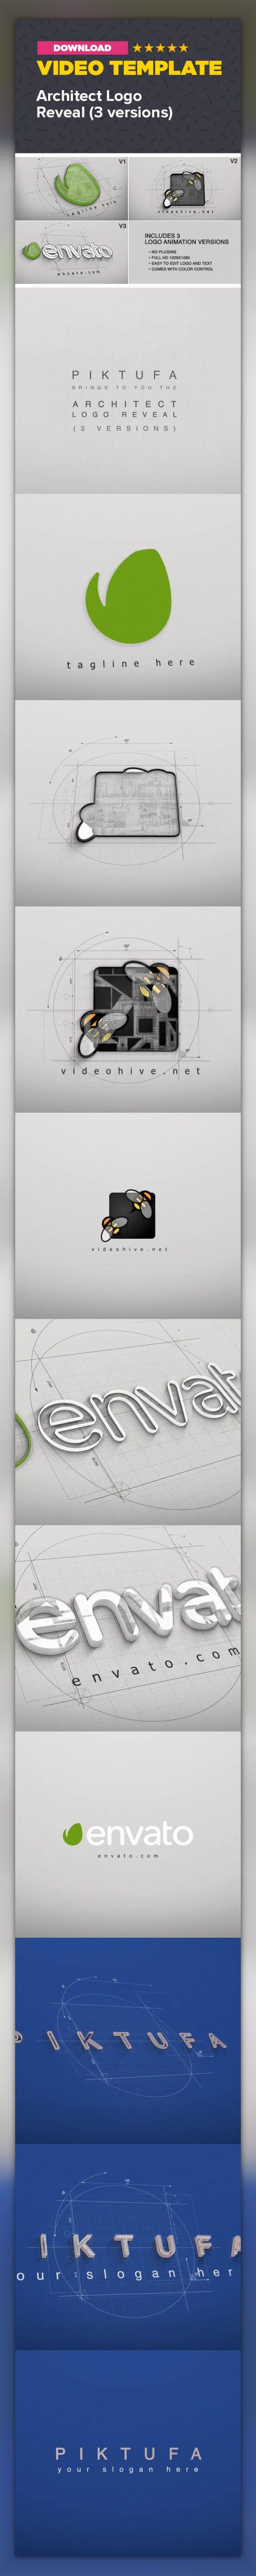 30 best video logo images on pinterest composition channel and 3d logo architecture blueprint bright building clean construction corporate malvernweather Gallery